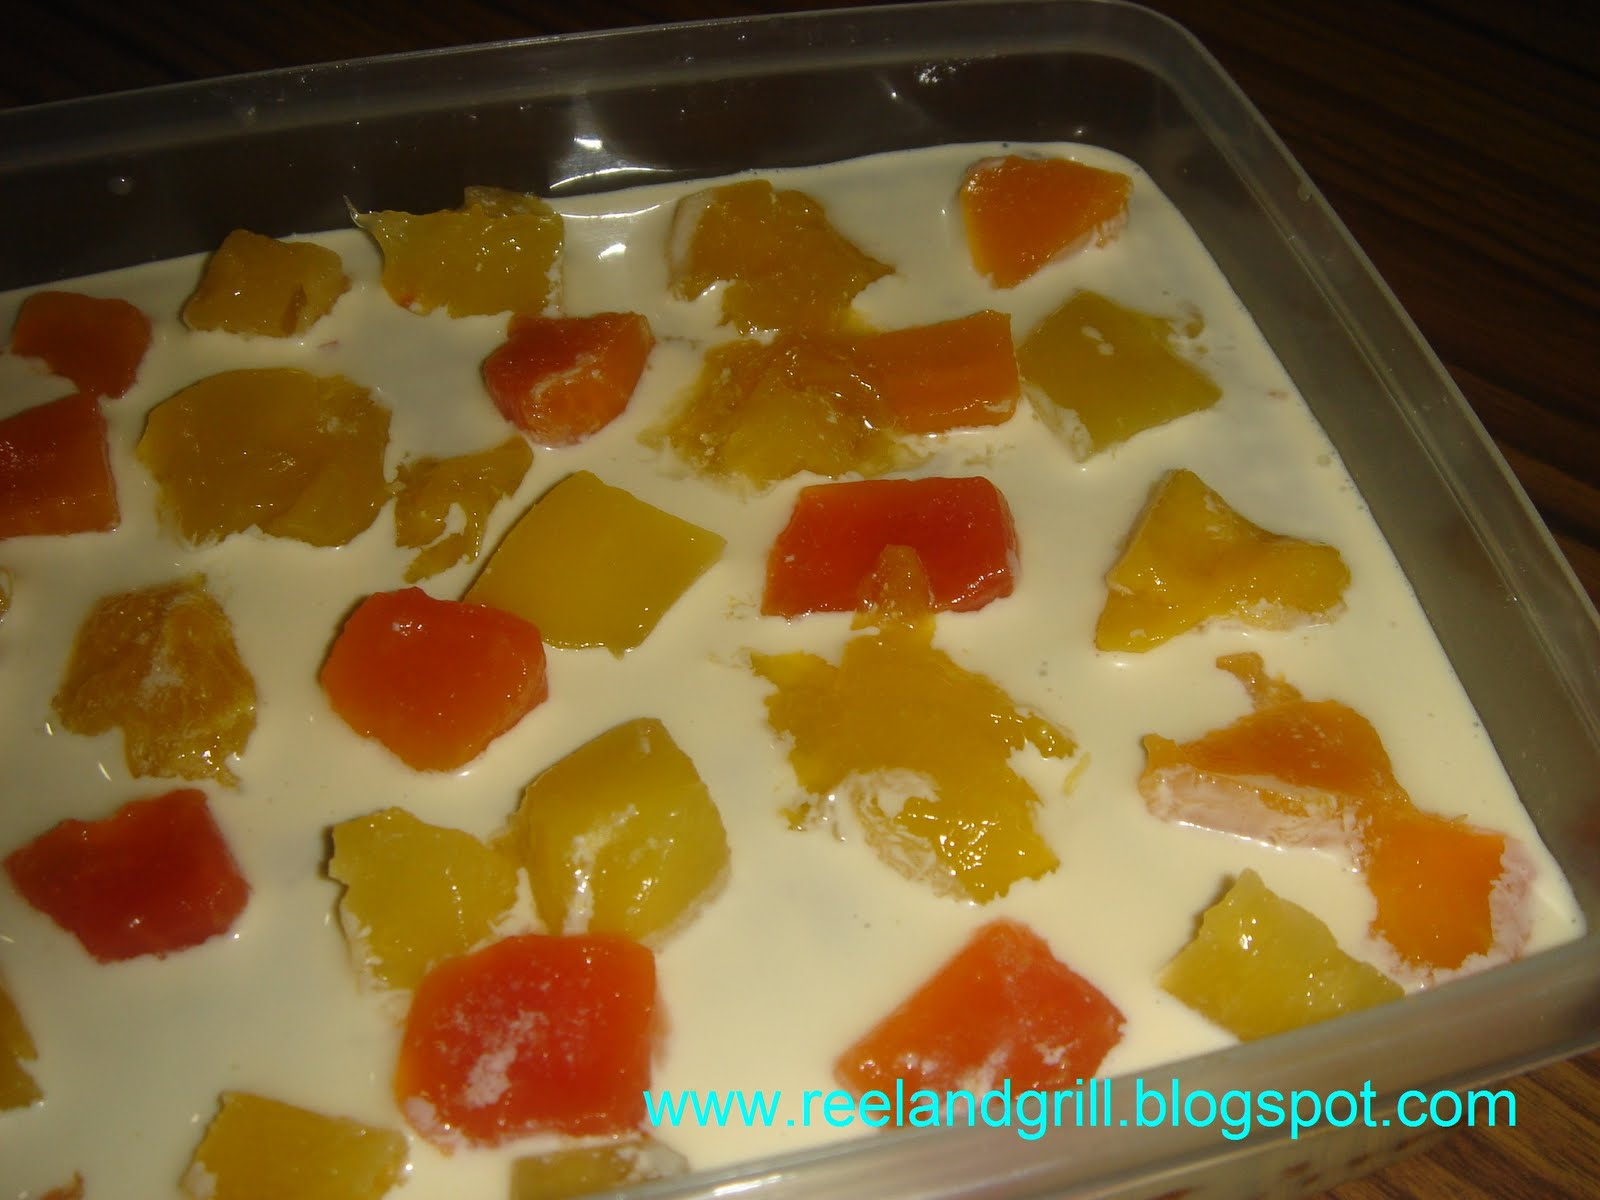 Refrigerated Cake Recipe Filipino Style